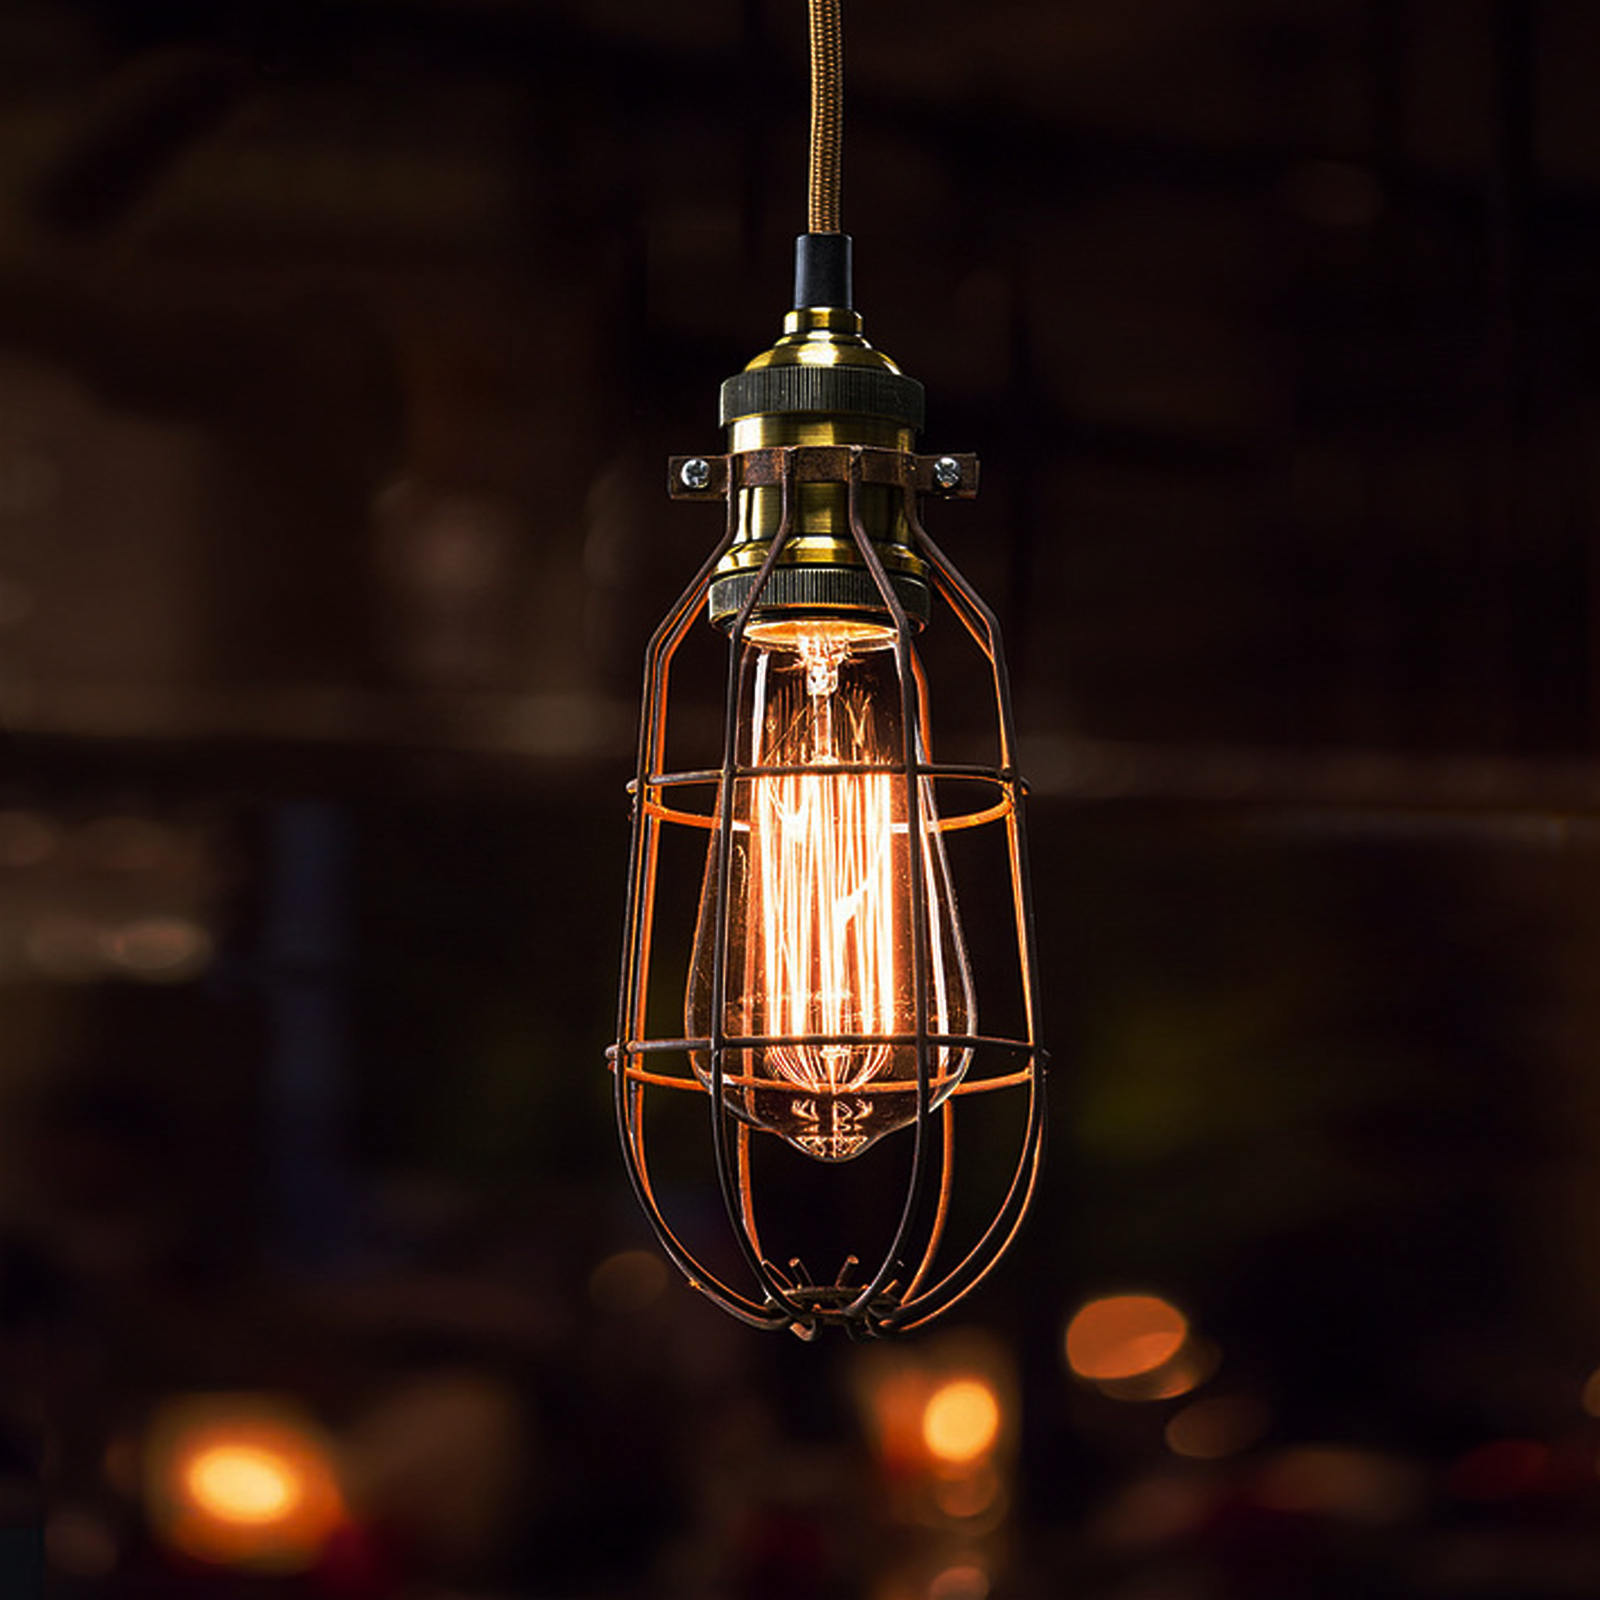 pendant light vintage made of glass small fixtures lighting